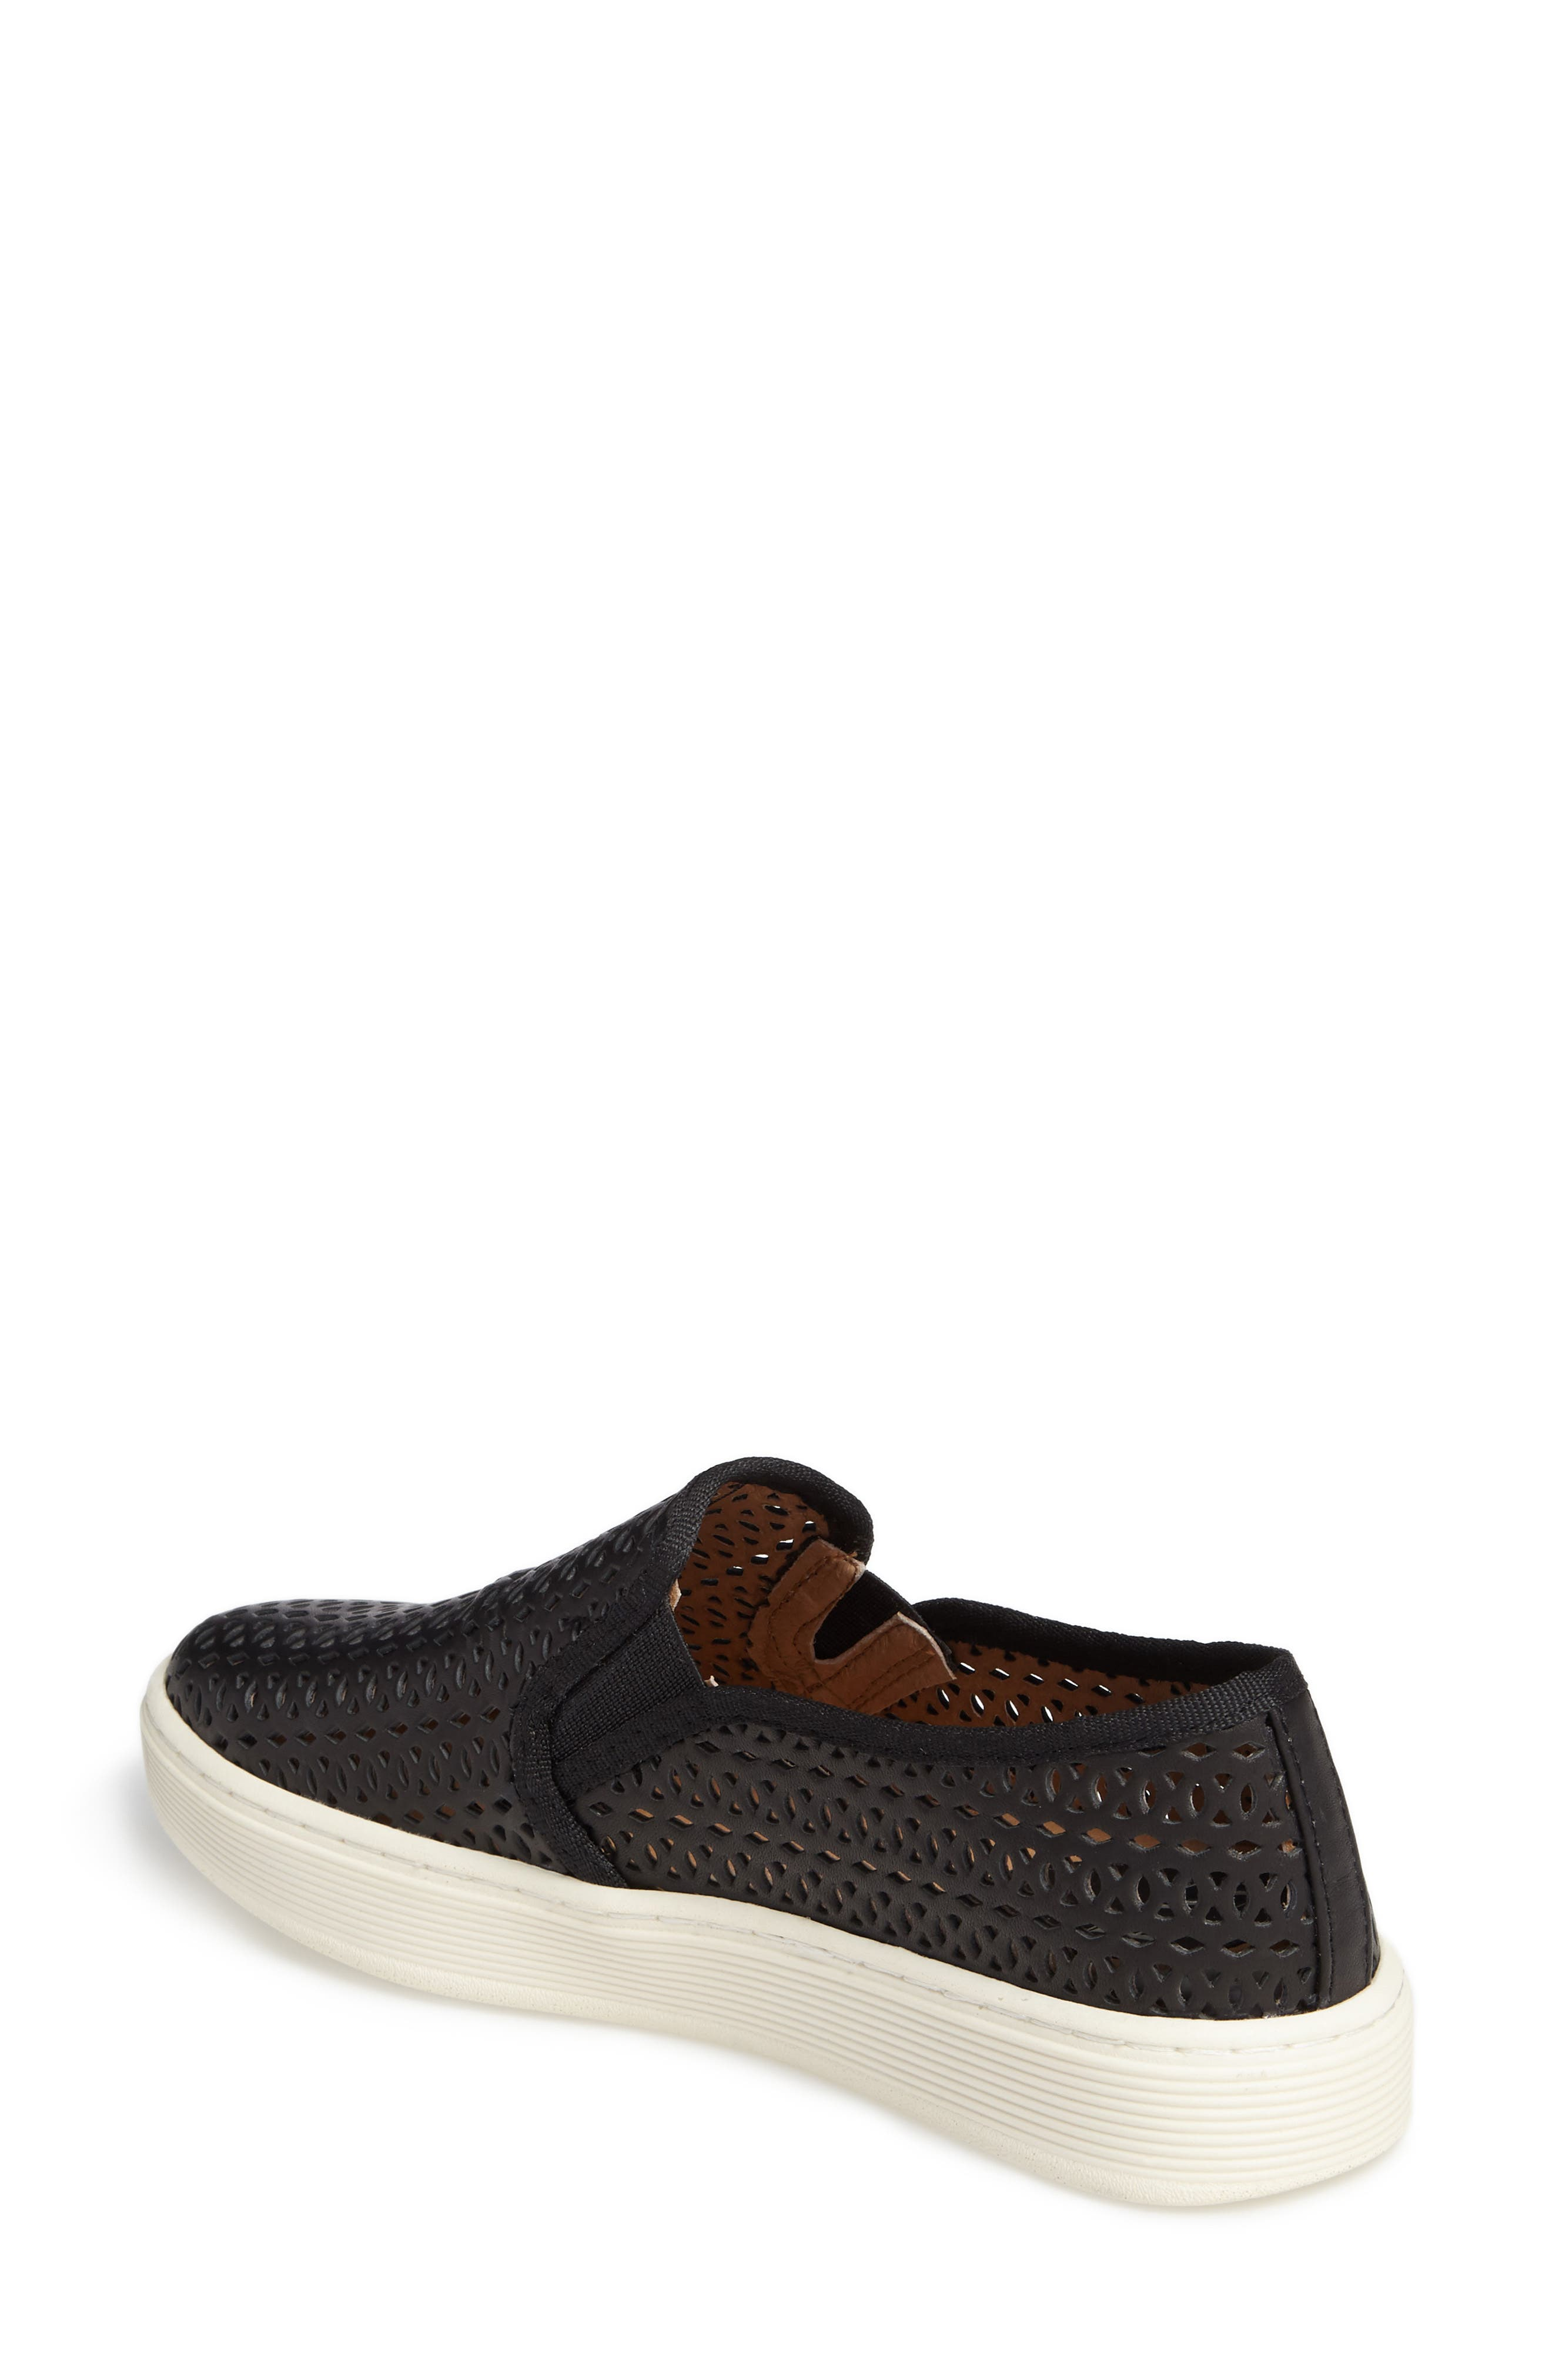 Somers II Slip-on Sneaker,                             Alternate thumbnail 2, color,                             Black Perforated Leather